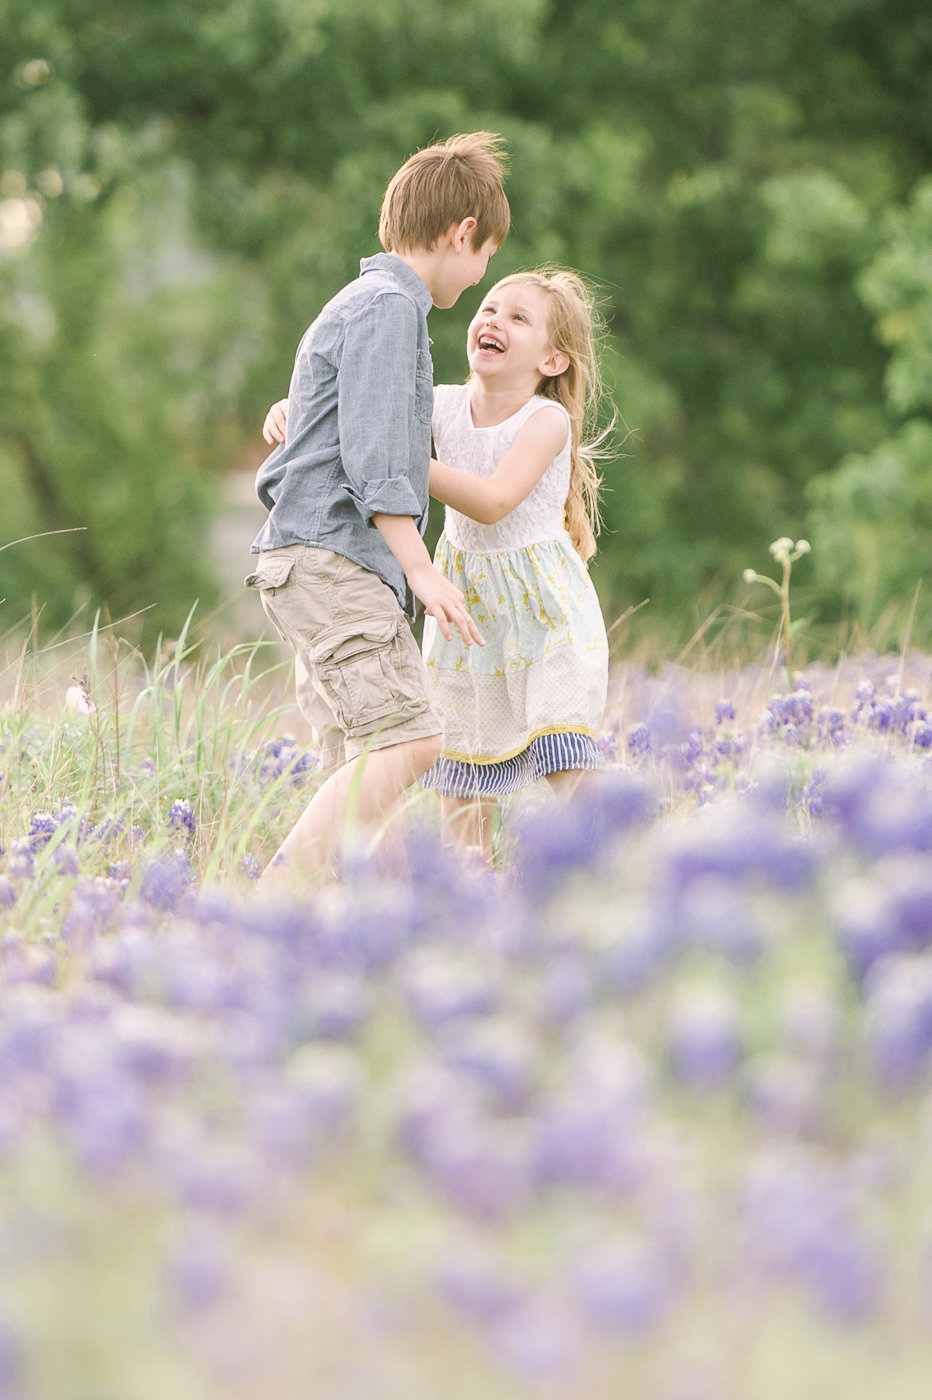 bluebonnet-texas-family-portrait-photographer-16